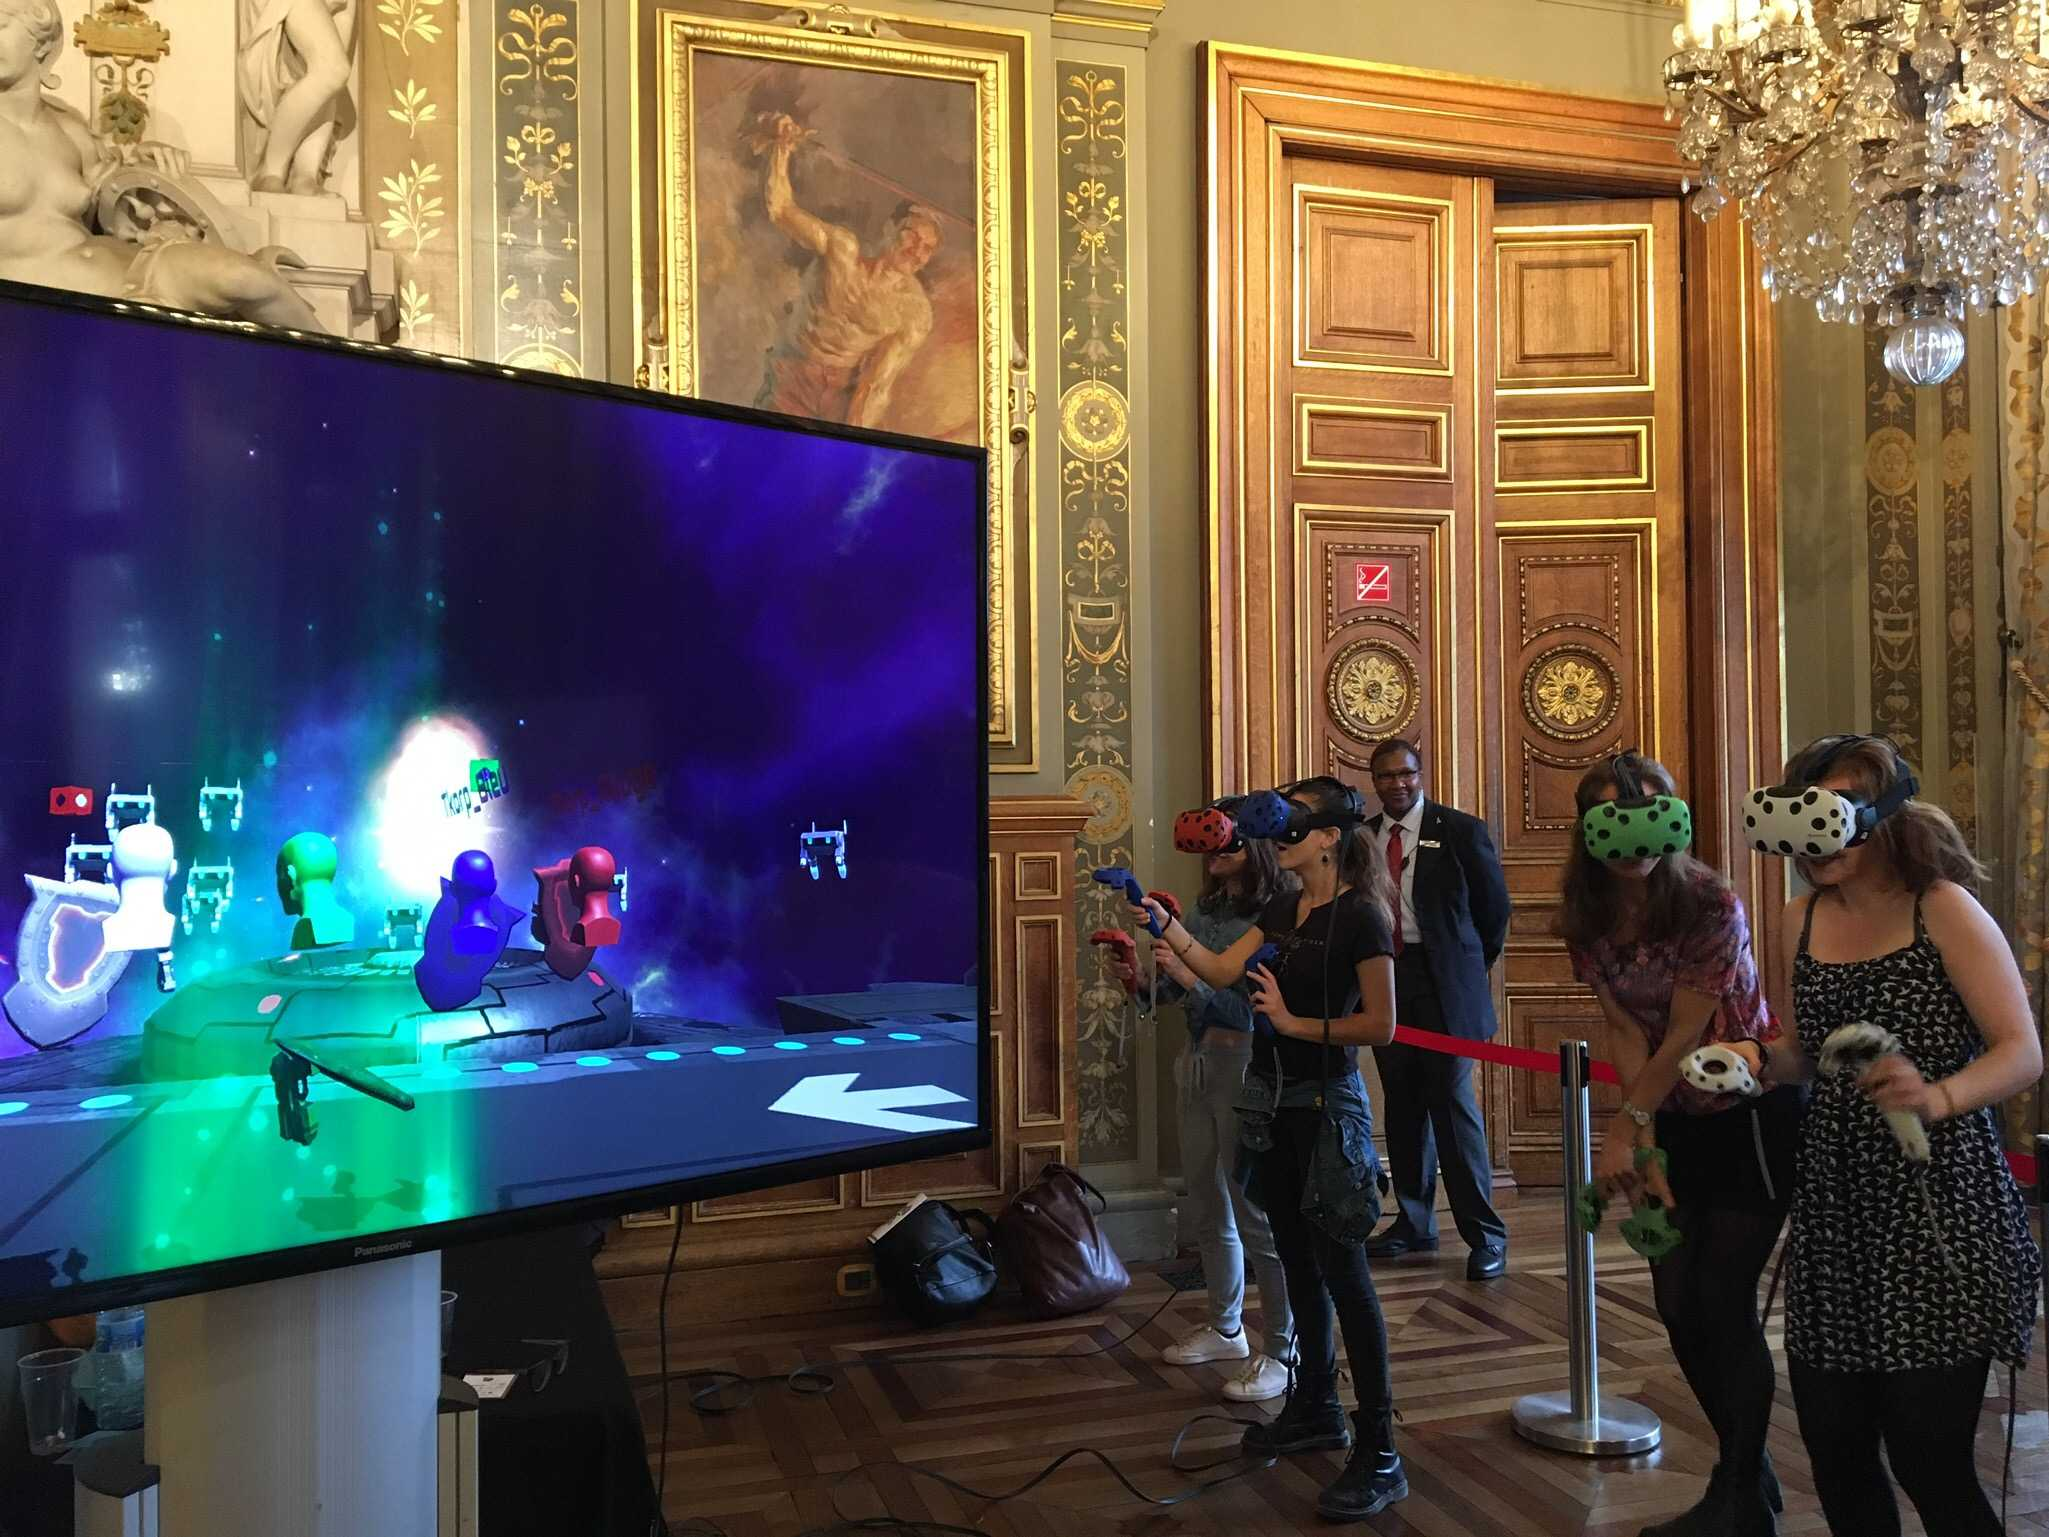 Animation team building - Animation team building Mairie de Paris